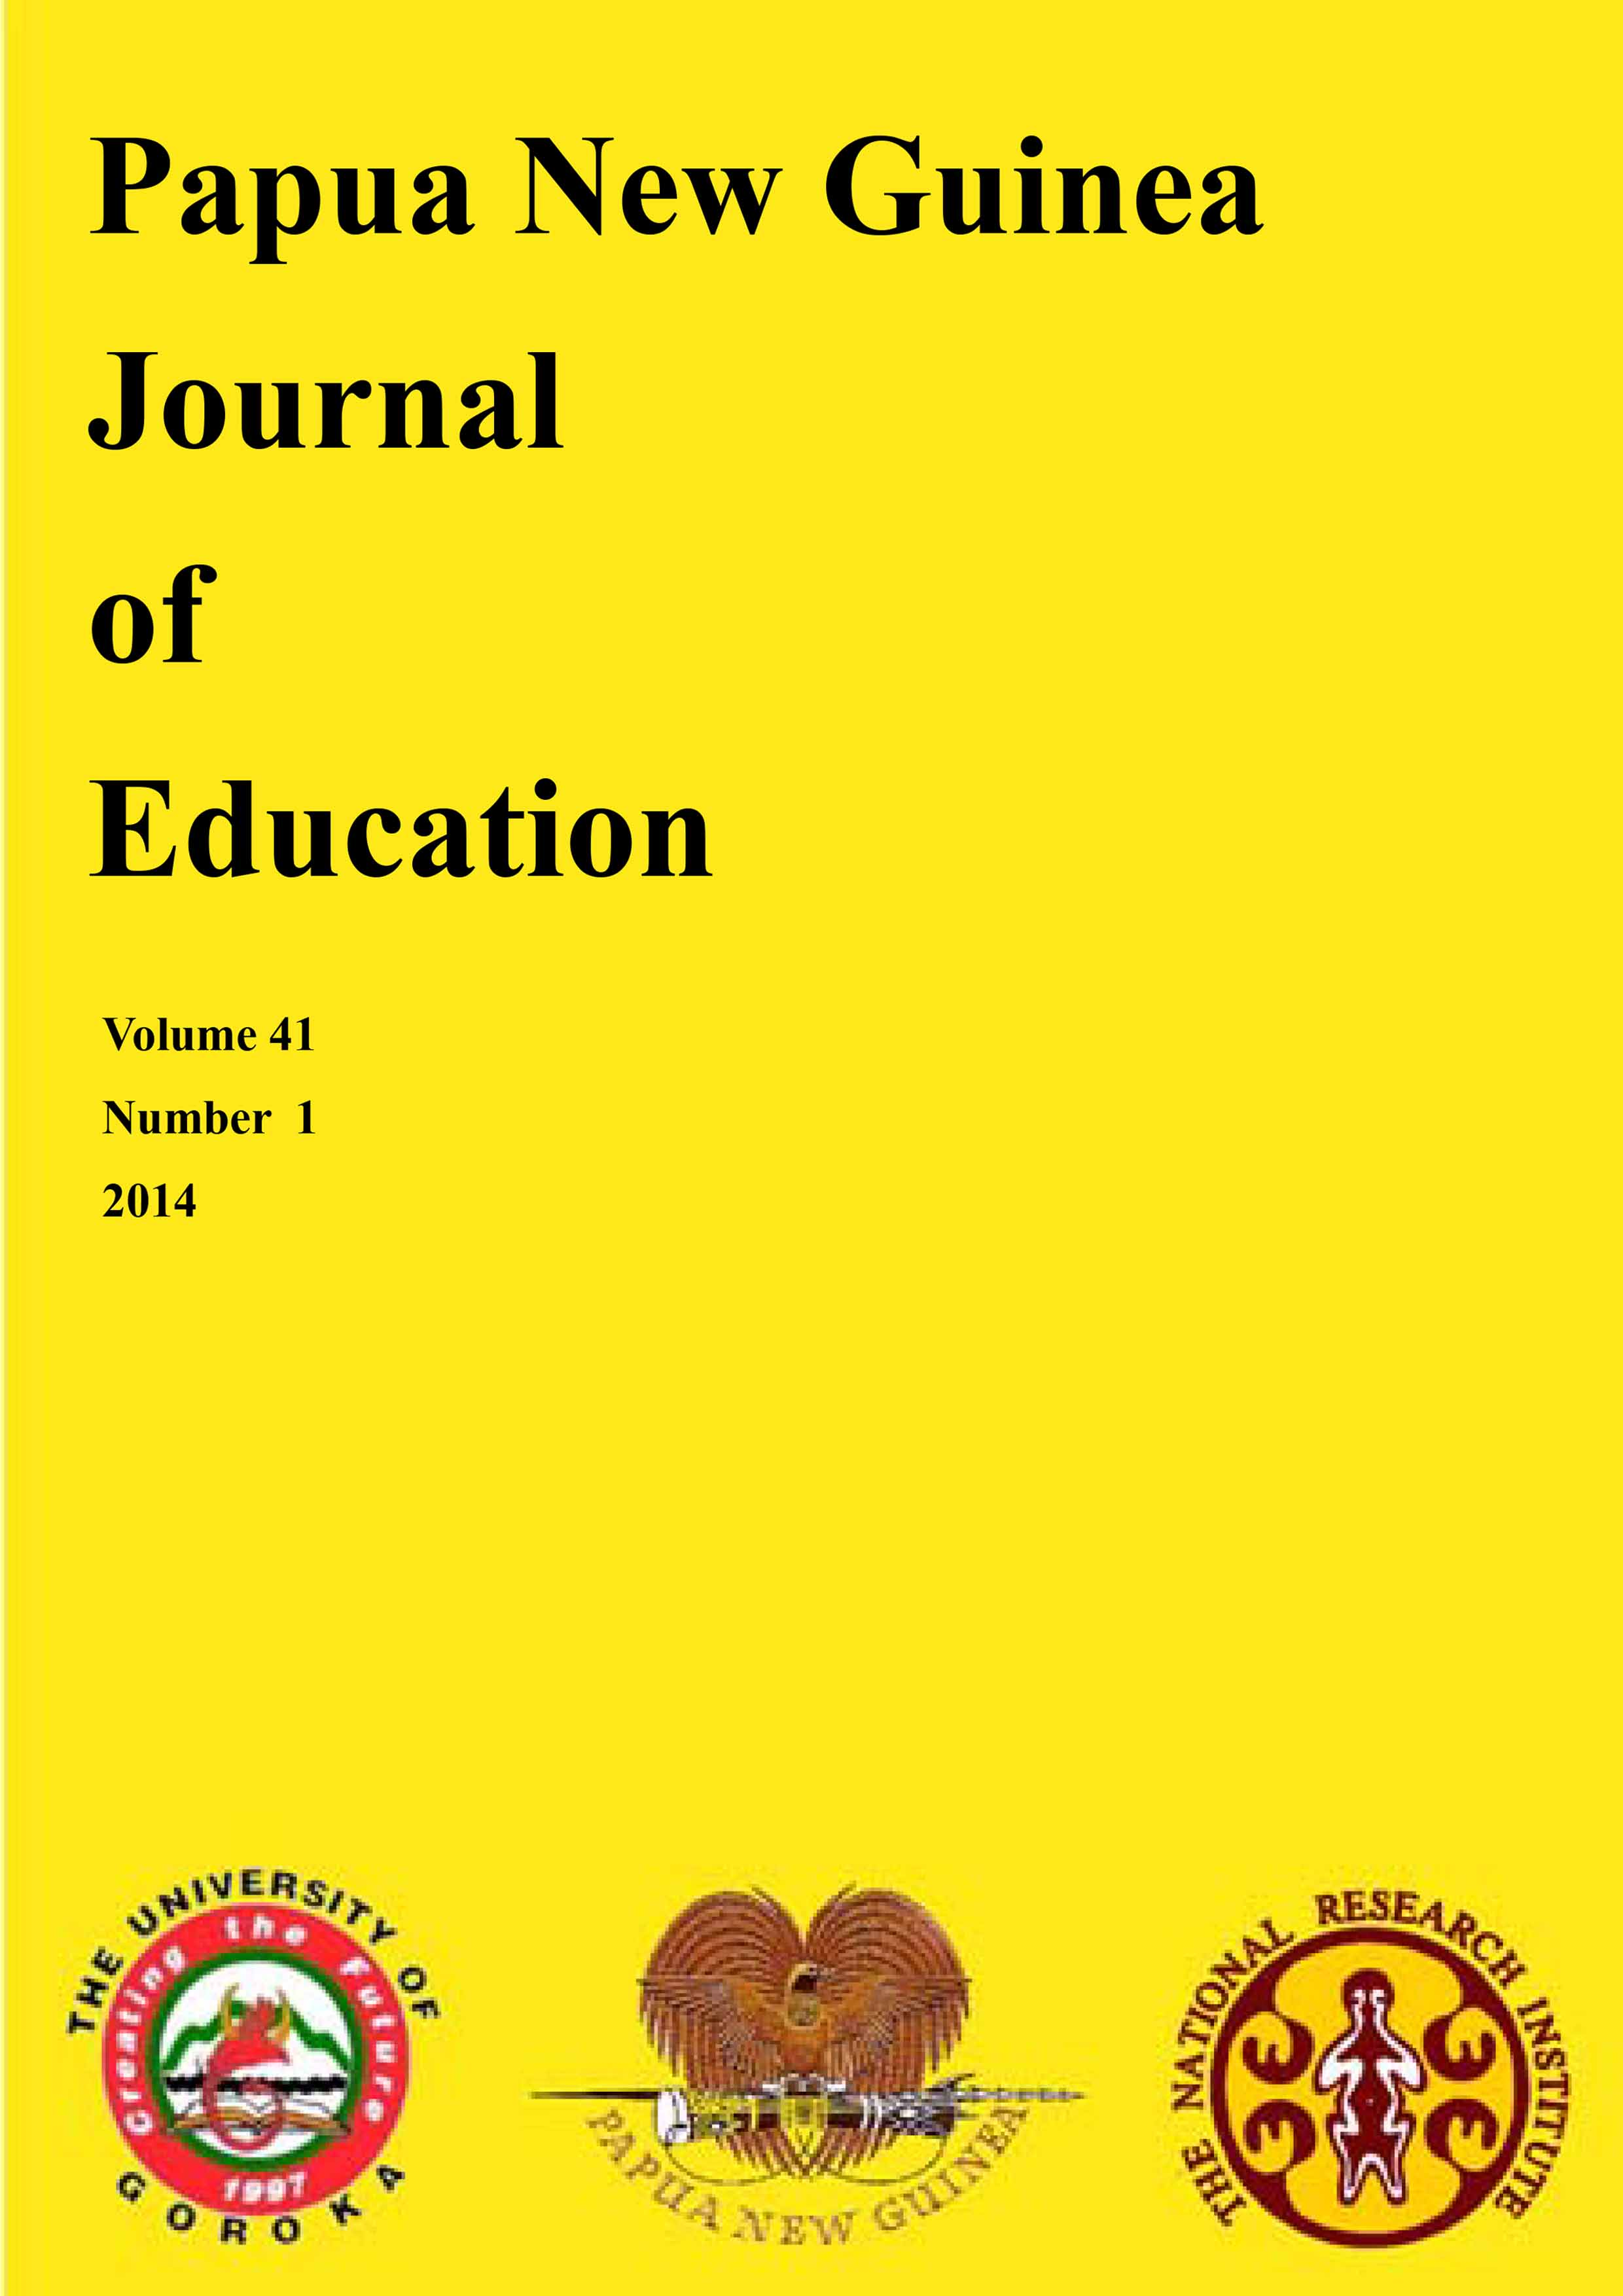 OP PNG Journal of Education